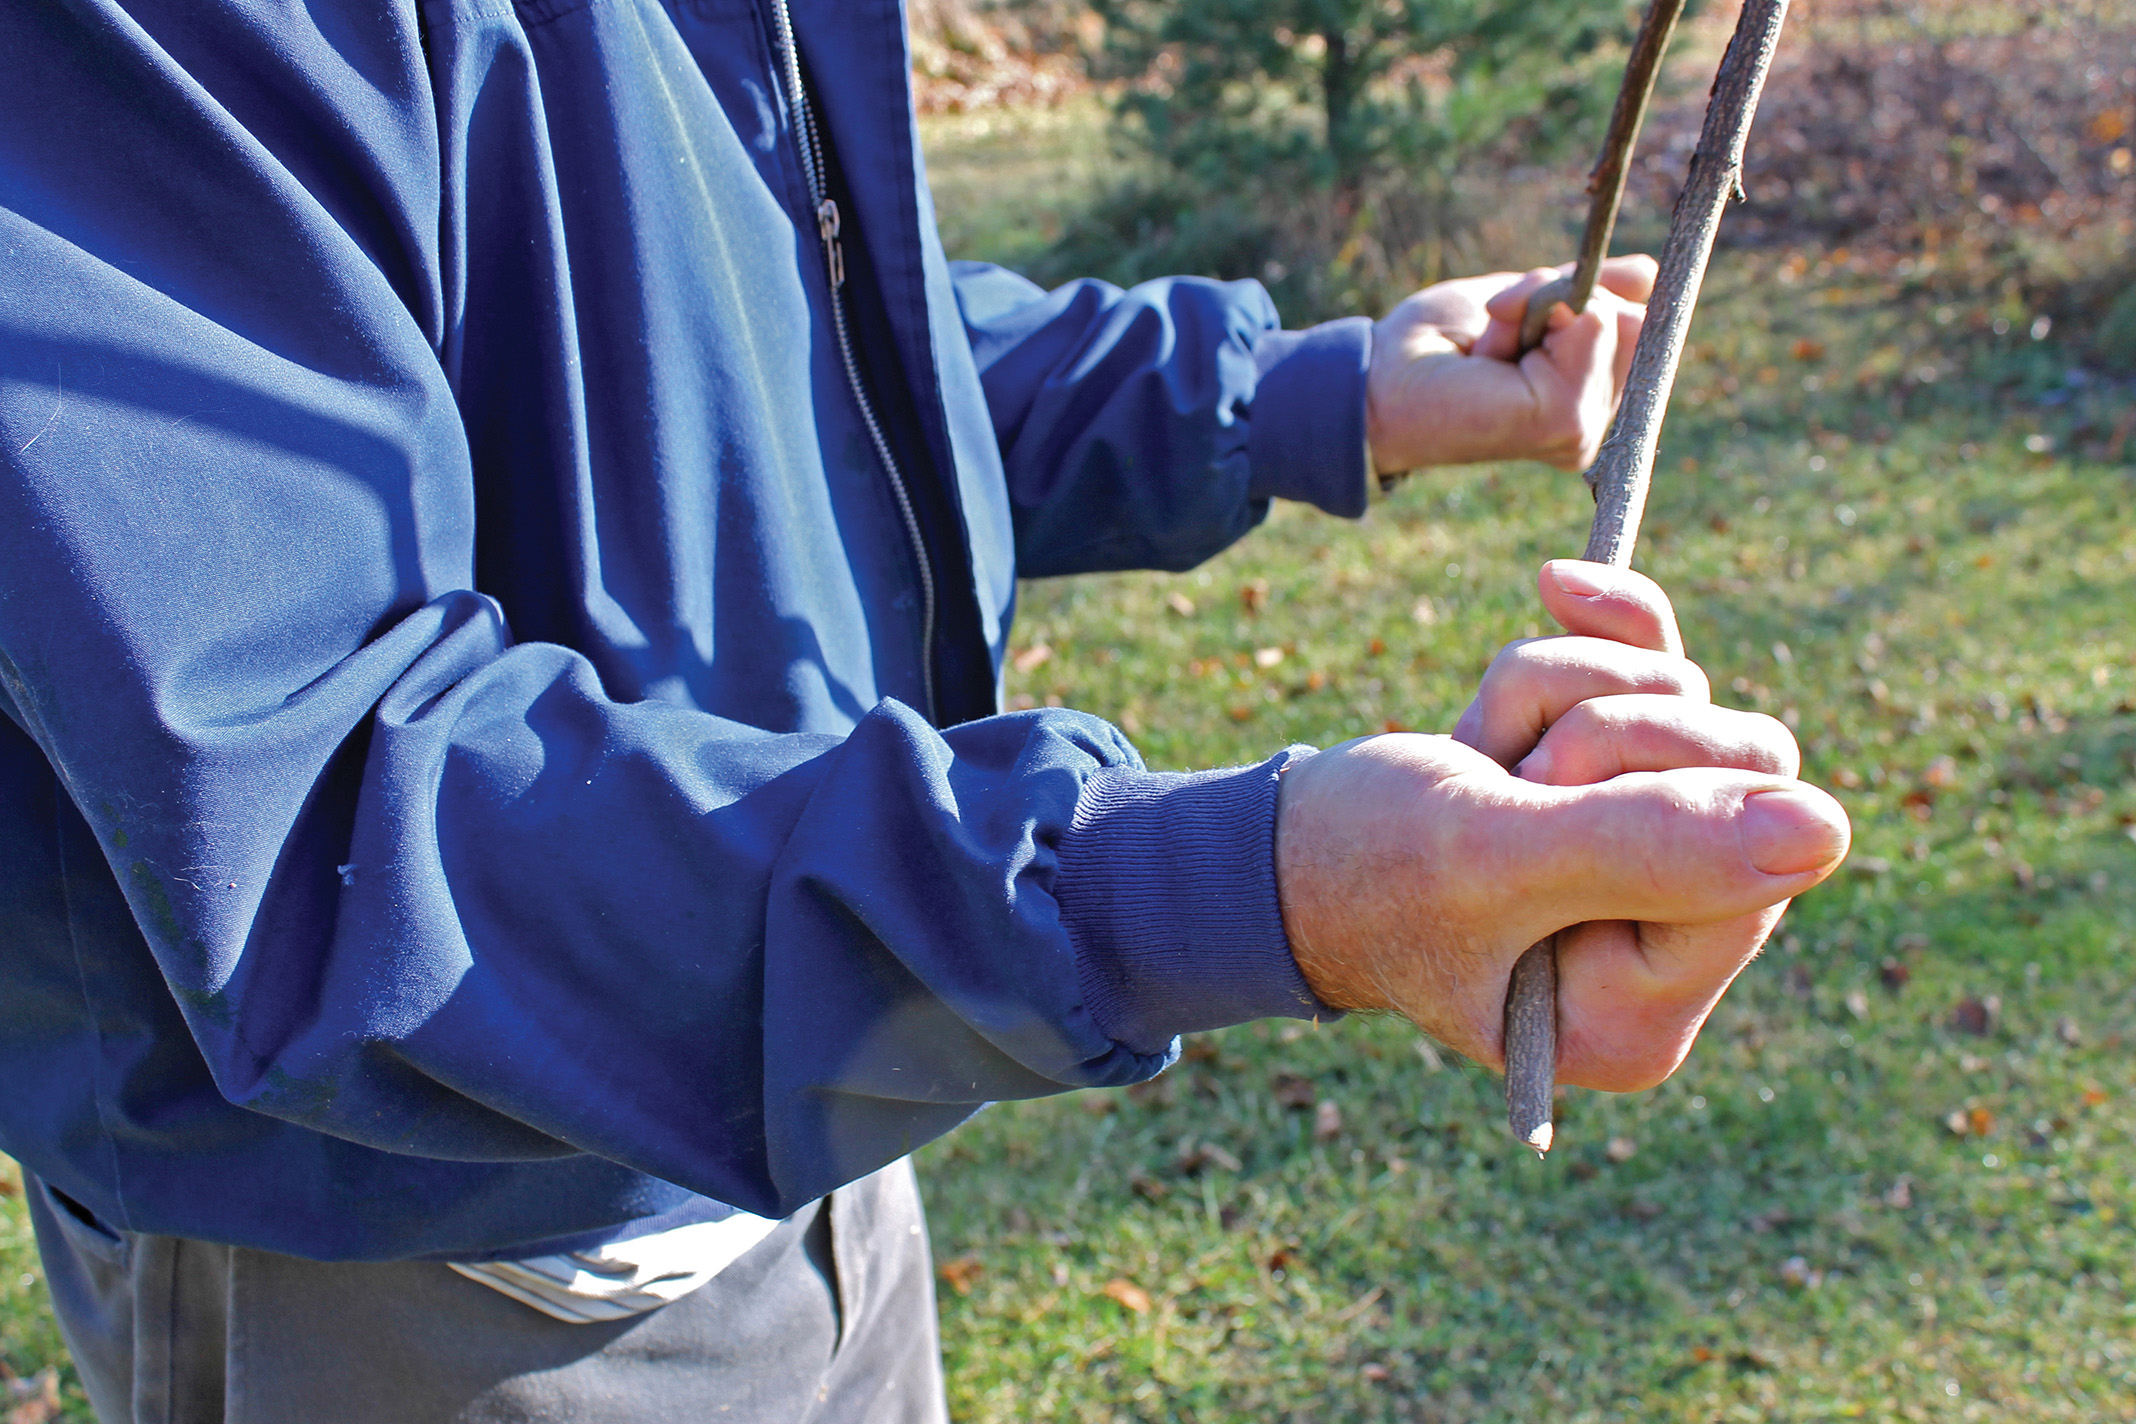 Hand and arm position are key elements to the craft of water witching, as Shatraw demonstrates, with thumbs pointing out, a tight grip on the branch and elbows tucked in.